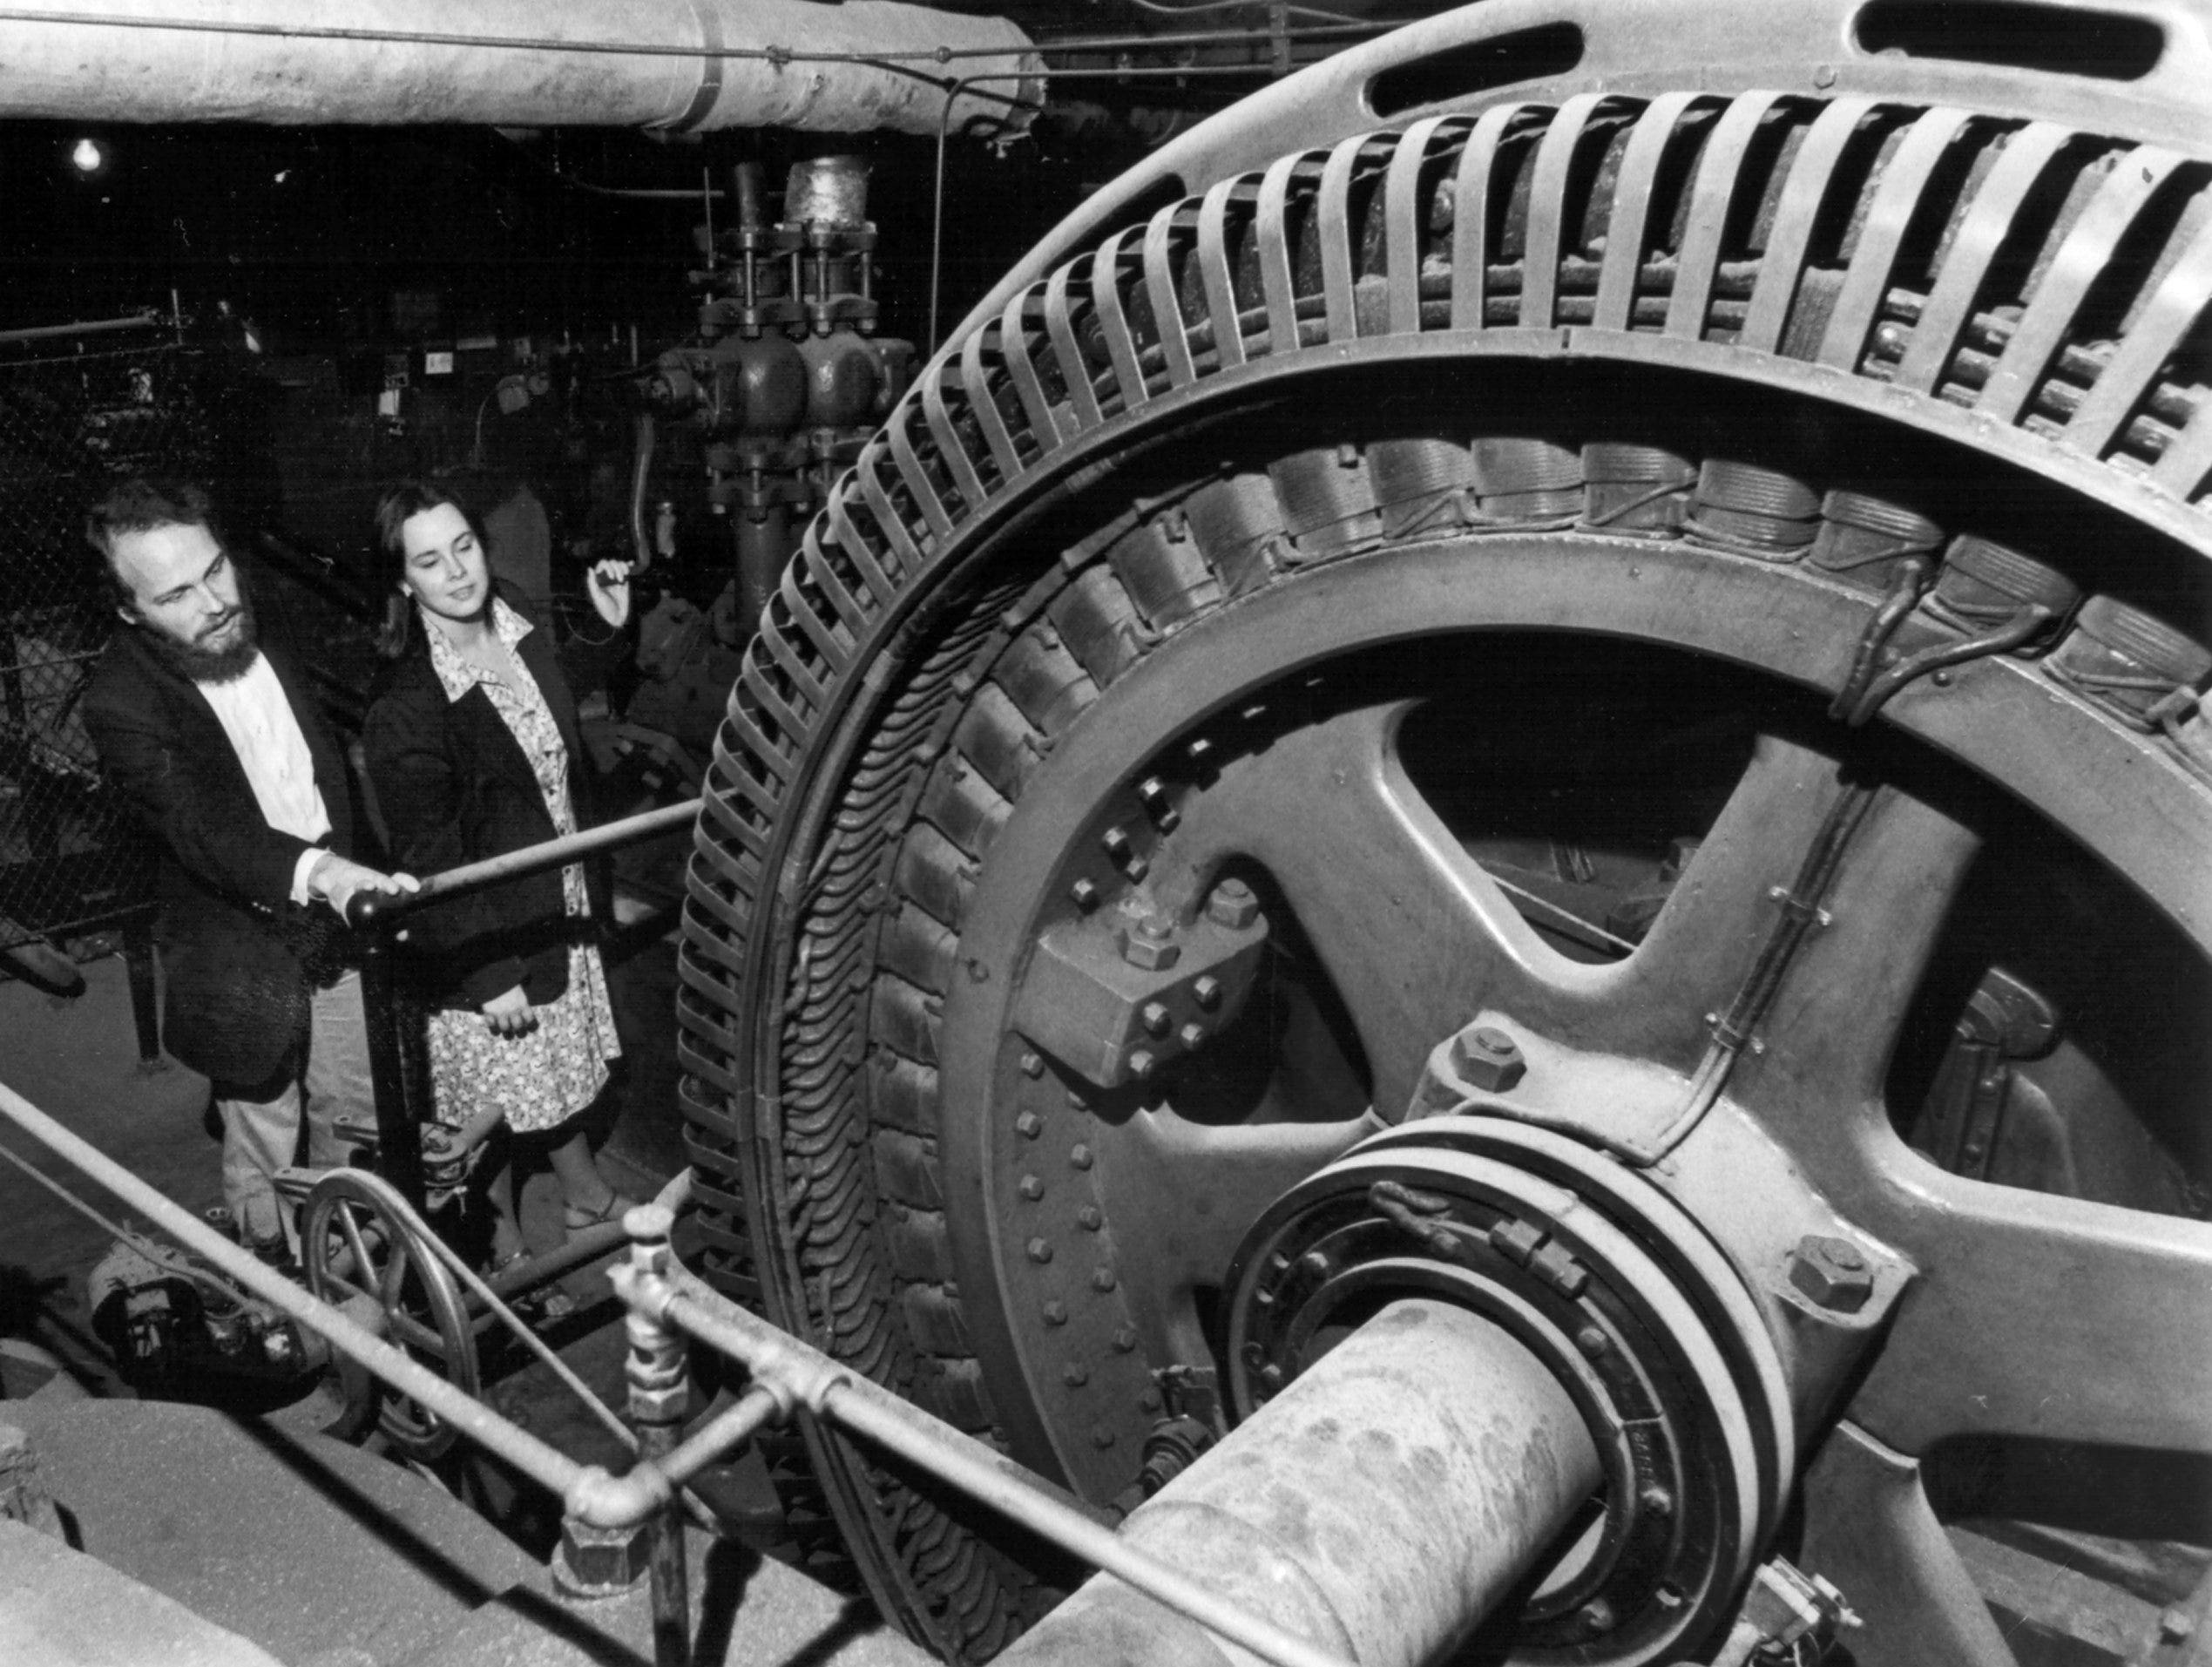 Hillsman Lee Wright (Left) and Rutledge Forney look at old equipment in the basement of The Orpheum on 17 Nov 1978, two days before the 50th anniversary of the opening of the grand theater in 1928.  The Memphis Development Foundation purchased the building in 1976, completed millions of dollars in renovations and opened the theater in February 1977.    It has staged hundreds of Broadway musicals and shows in the interim and generated millions in state and local tax dollars.